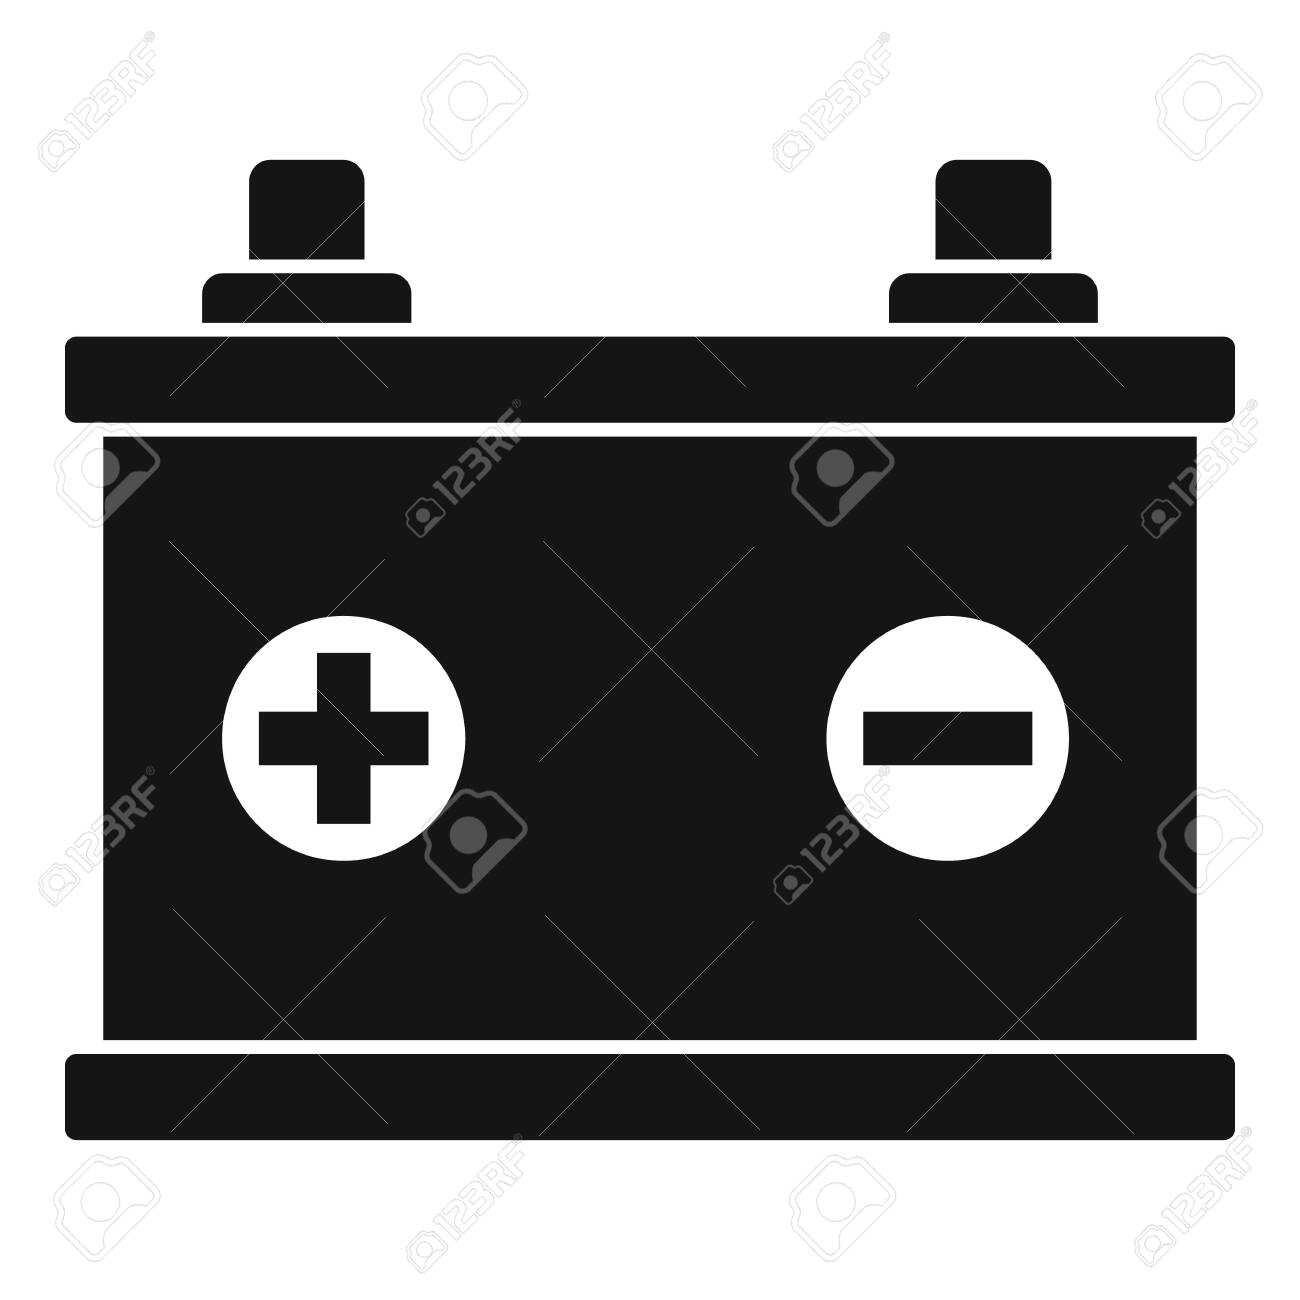 car battery icon simple illustration of car battery vector icon royalty free cliparts vectors and stock illustration image 146970155 123rf com